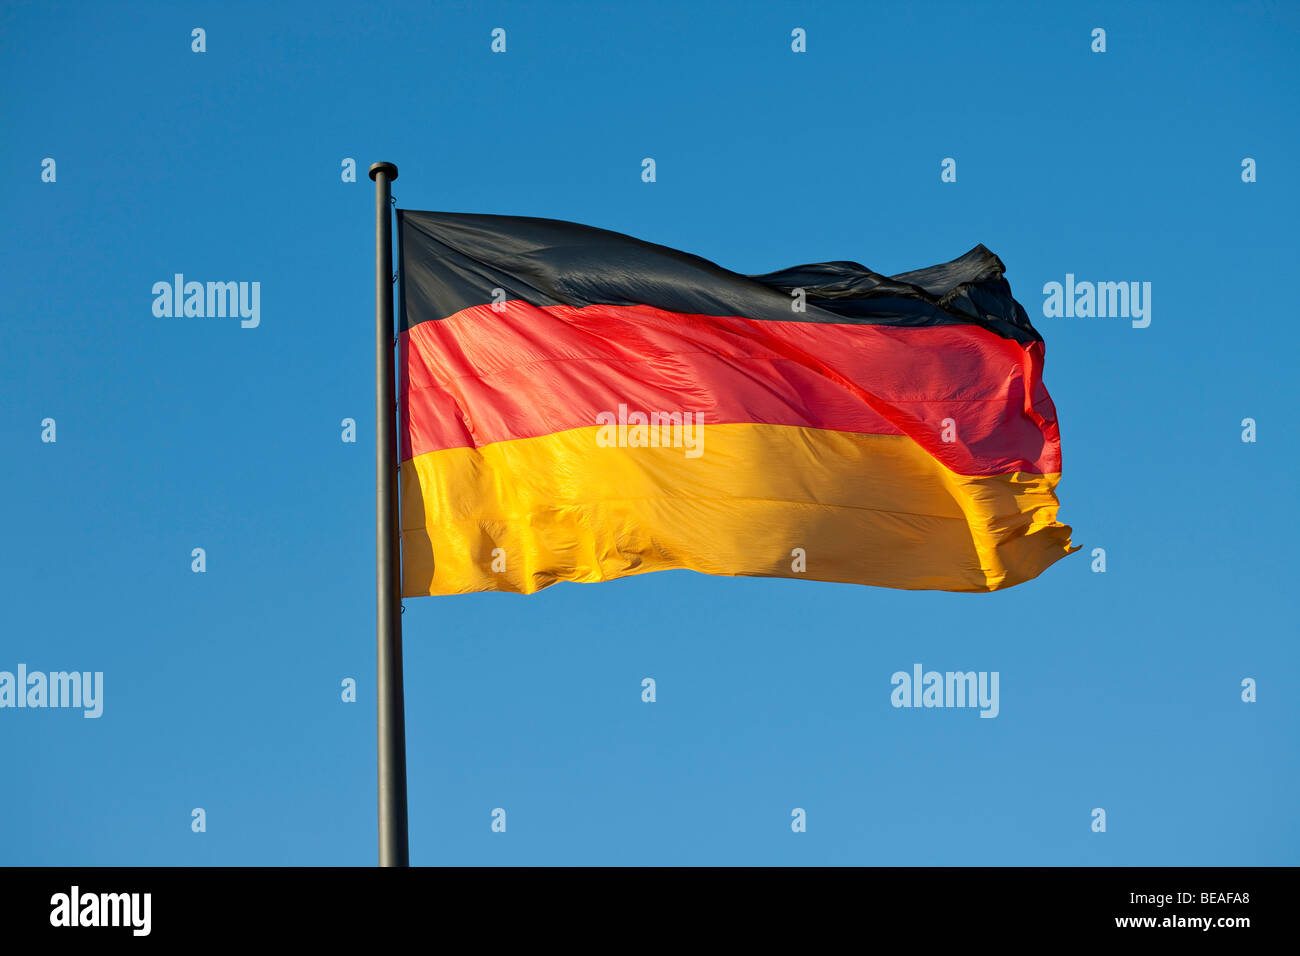 A German flag on a flag pole - Stock Image